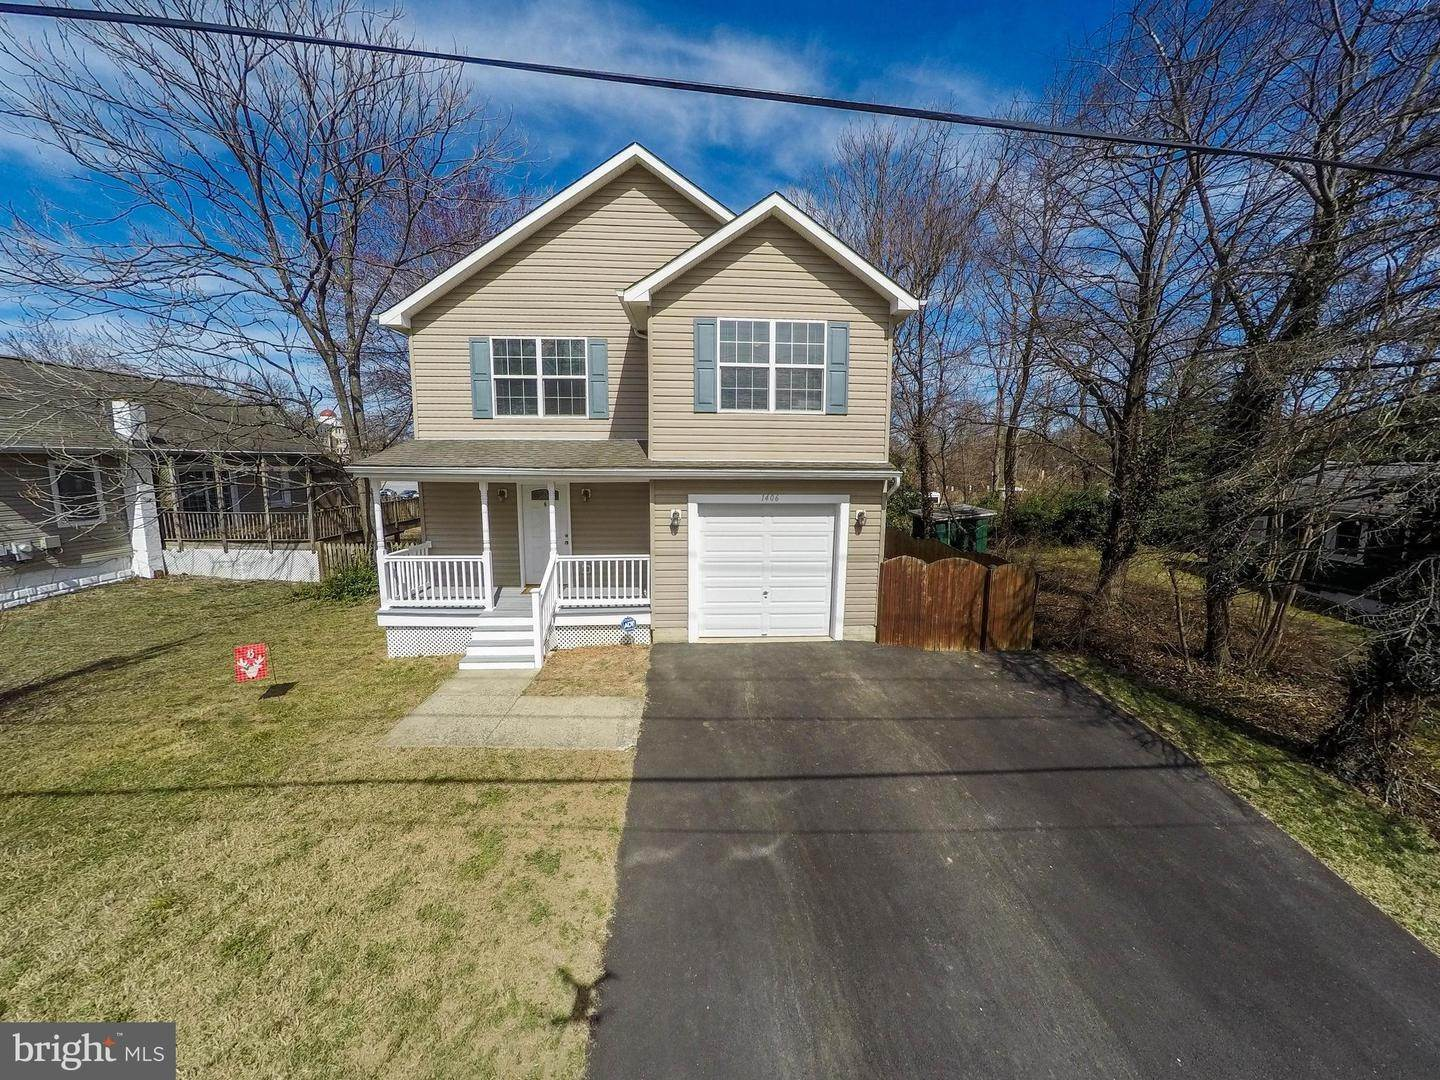 42. Single Family Homes om Odenton, Maryland, 21113 Verenigde Staten